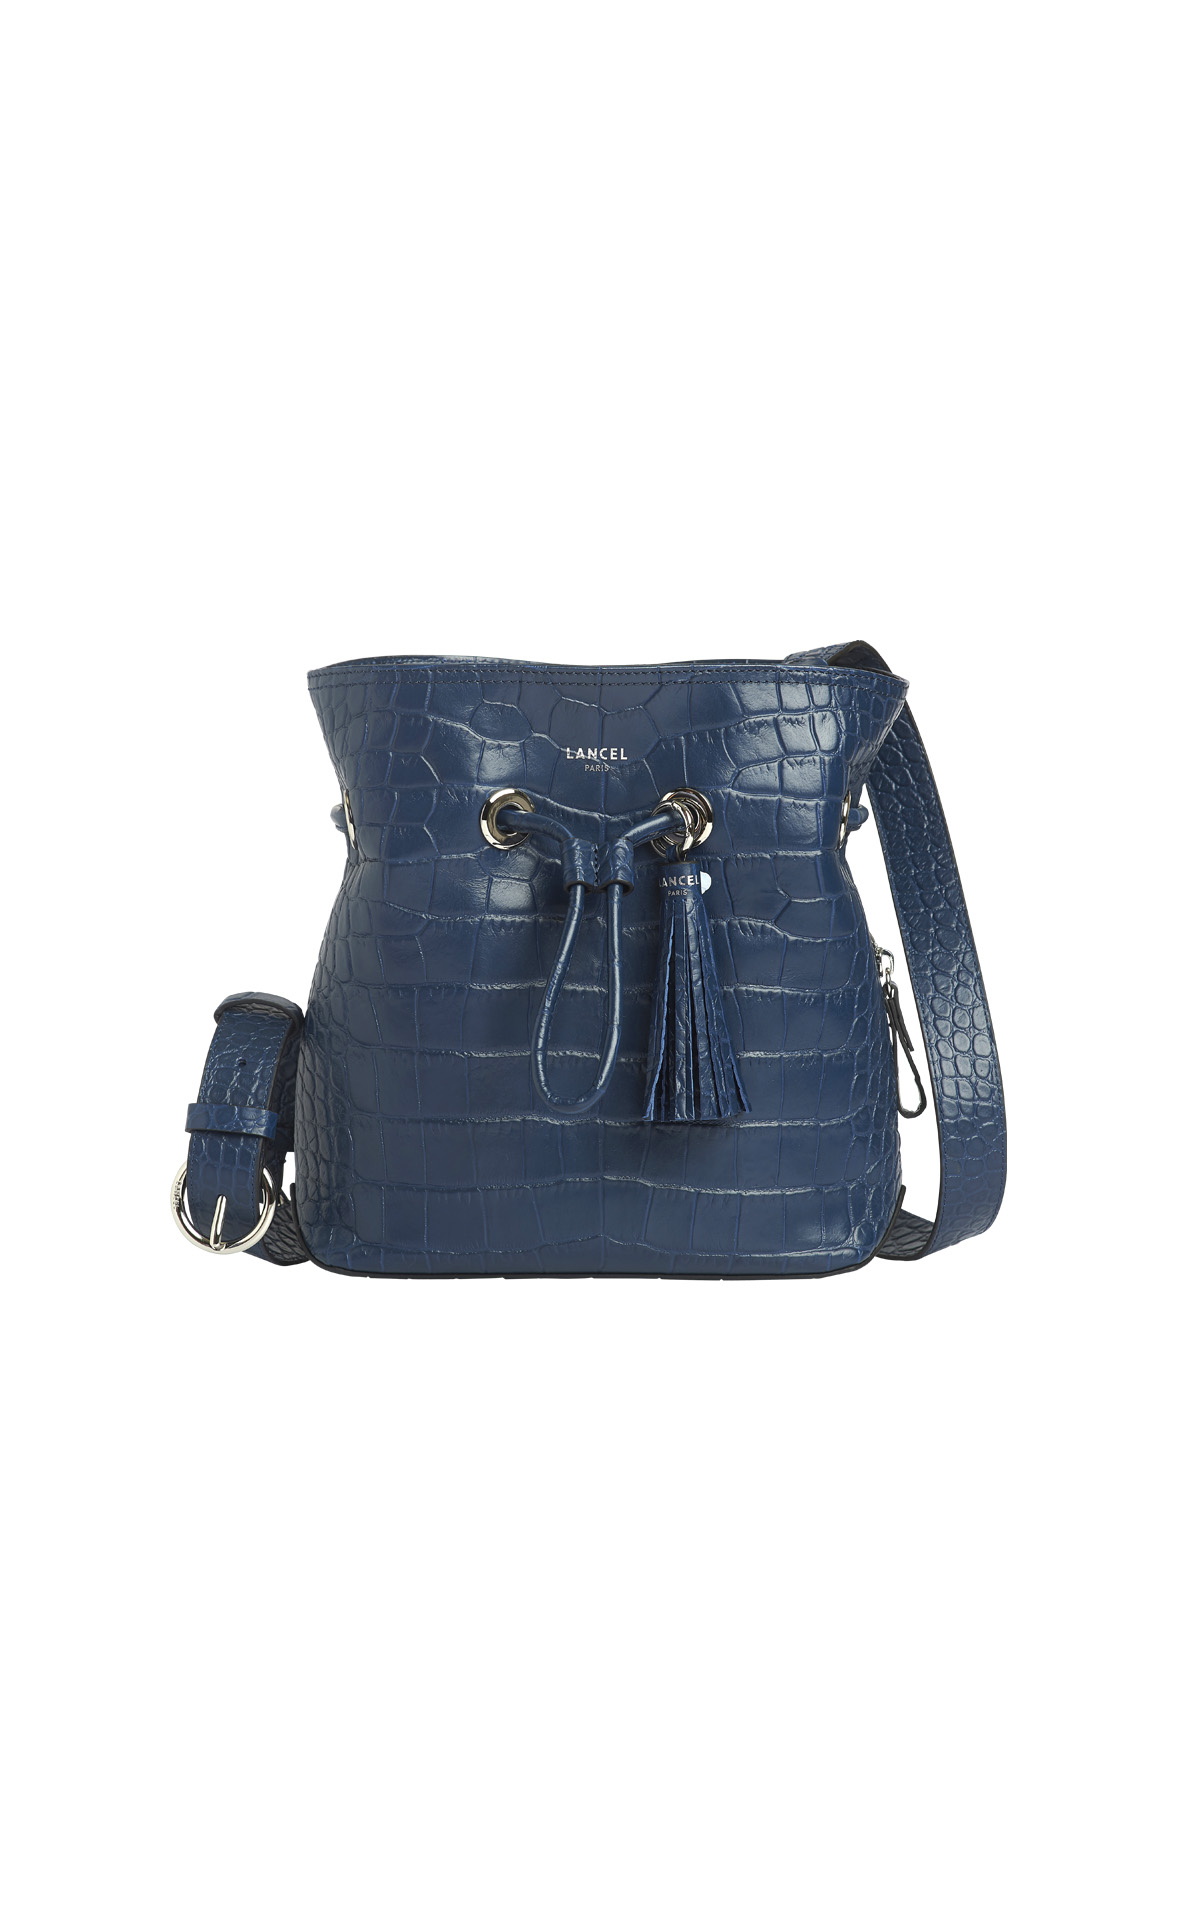 Blue croco bucket bag Lancel